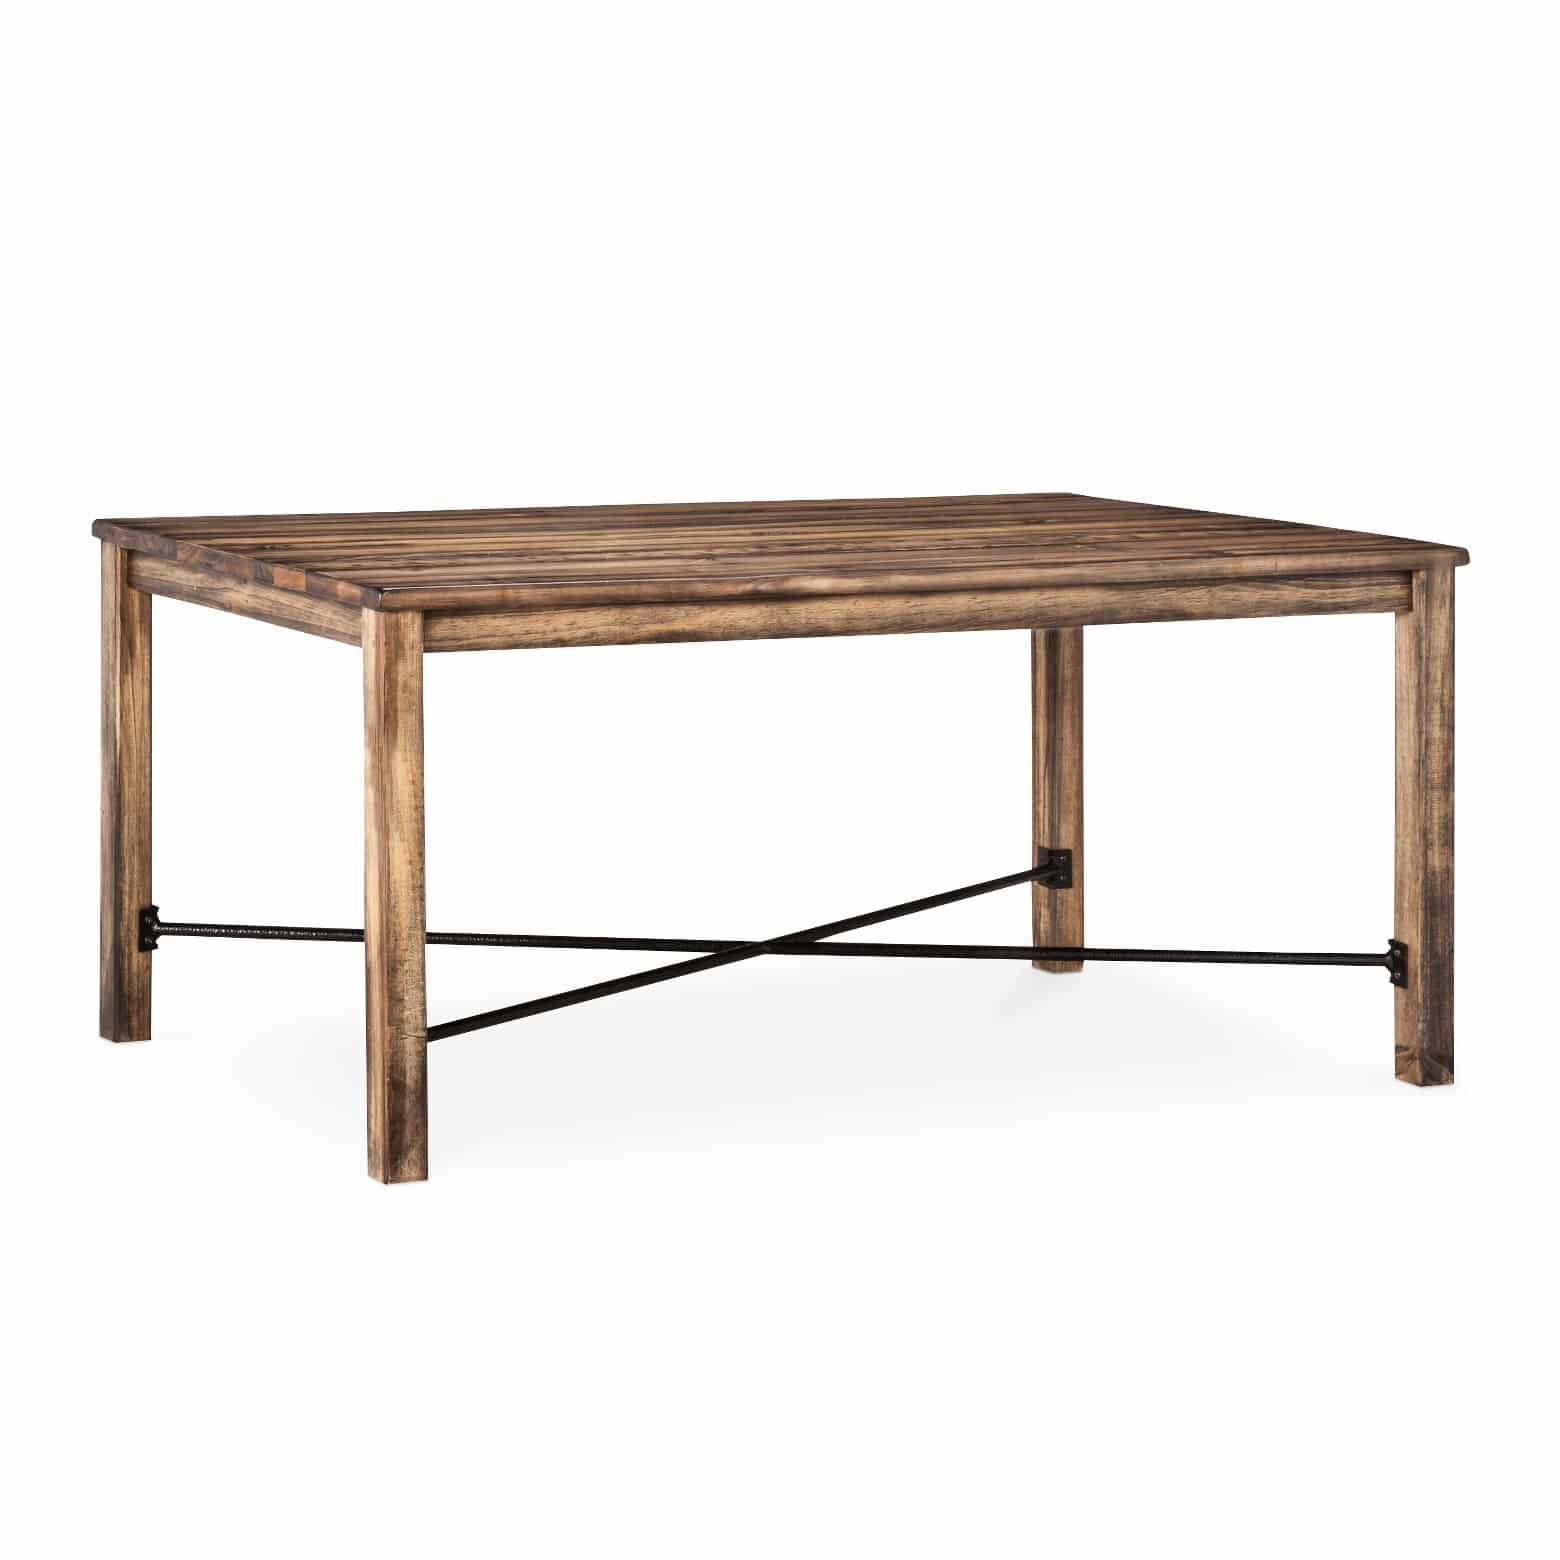 target sofa table espresso latest designs in india images seriously gorgeous farmhouse coffee tables you can buy